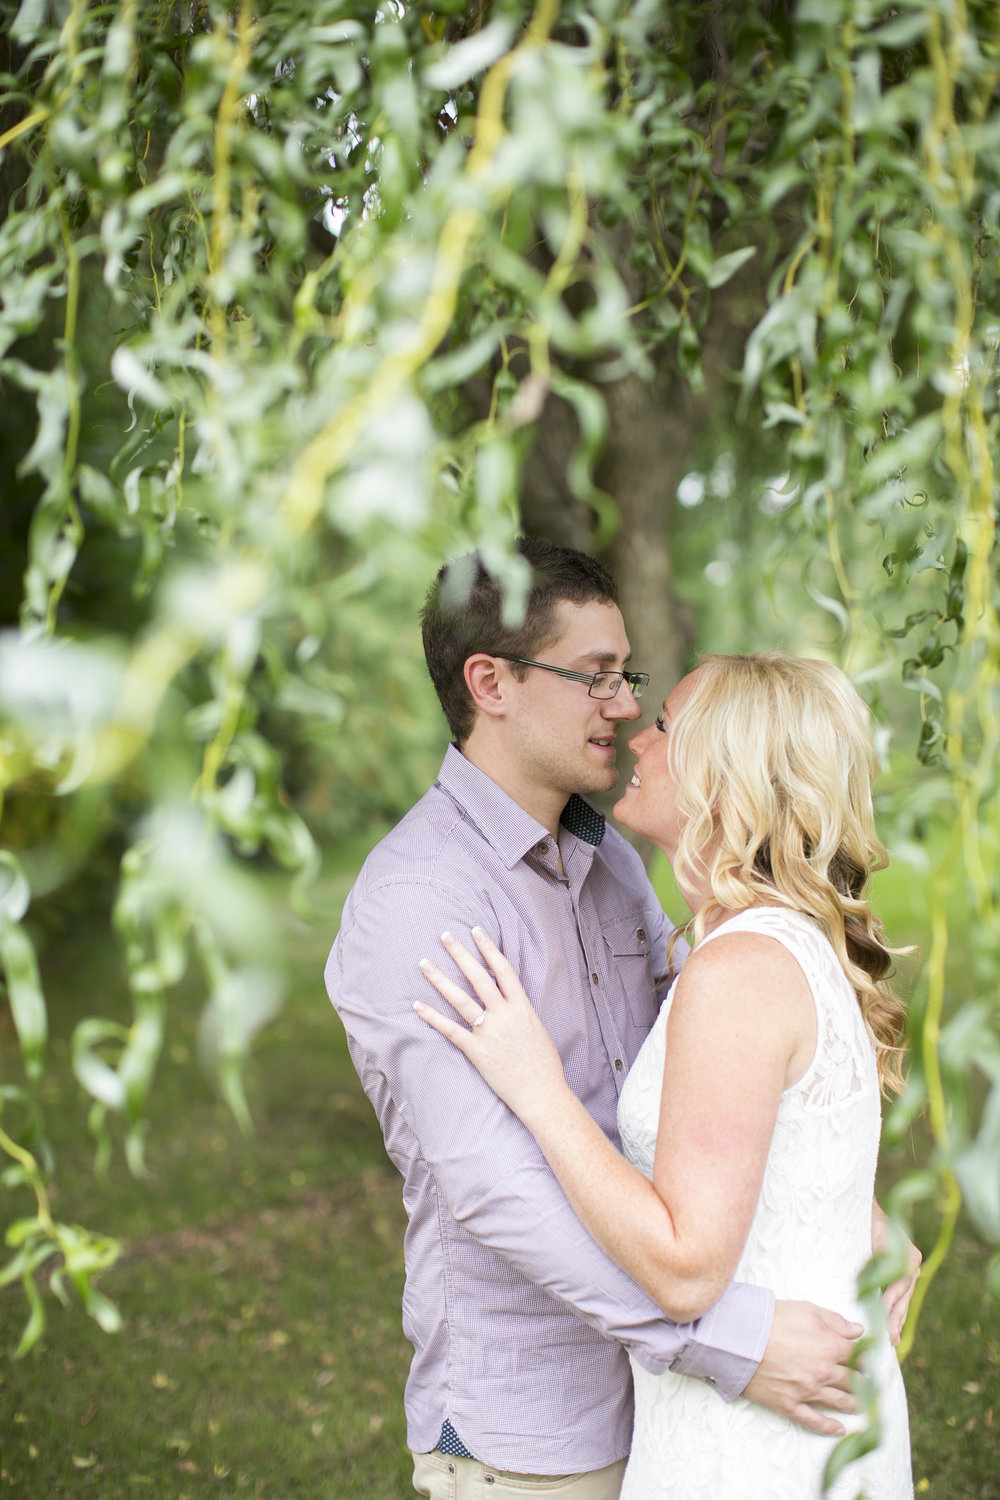 Niagara-on-the-Lake-Engagement-photos-by-Philosophy-Studios-003.JPG